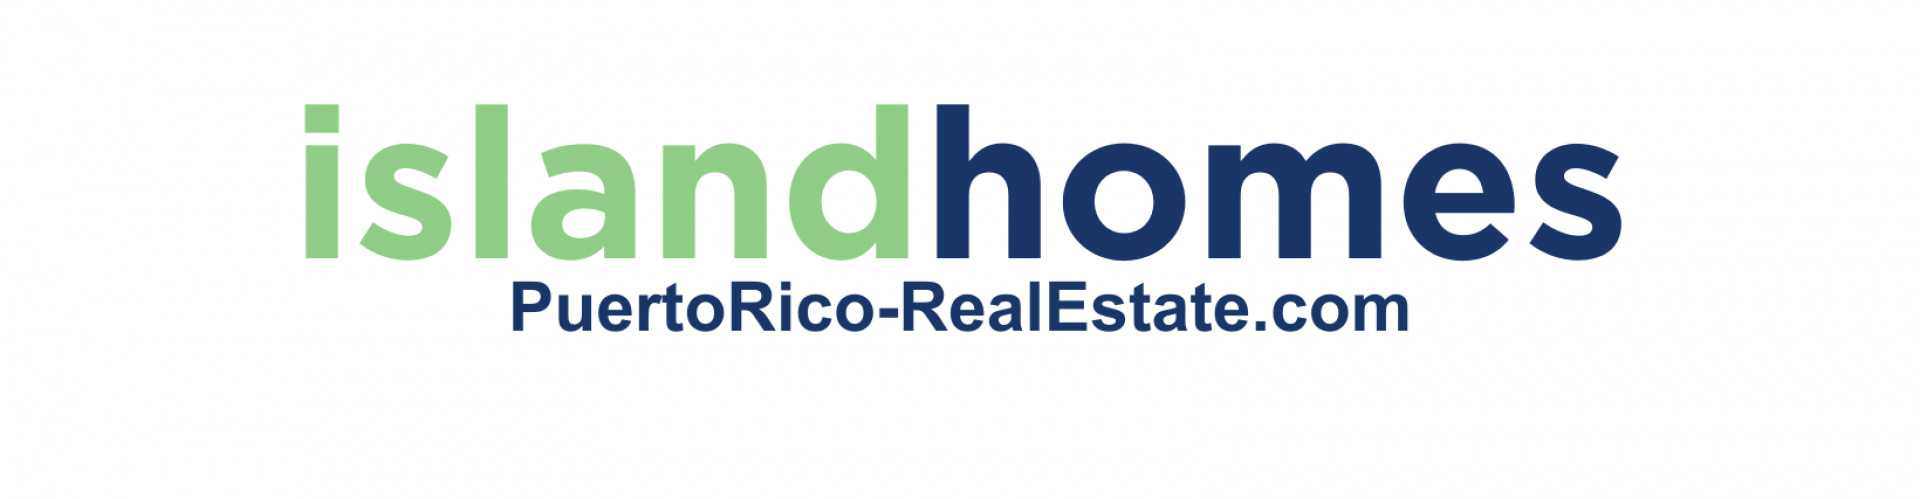 Jocelyn Ucedo, Puerto Rico Real Estate